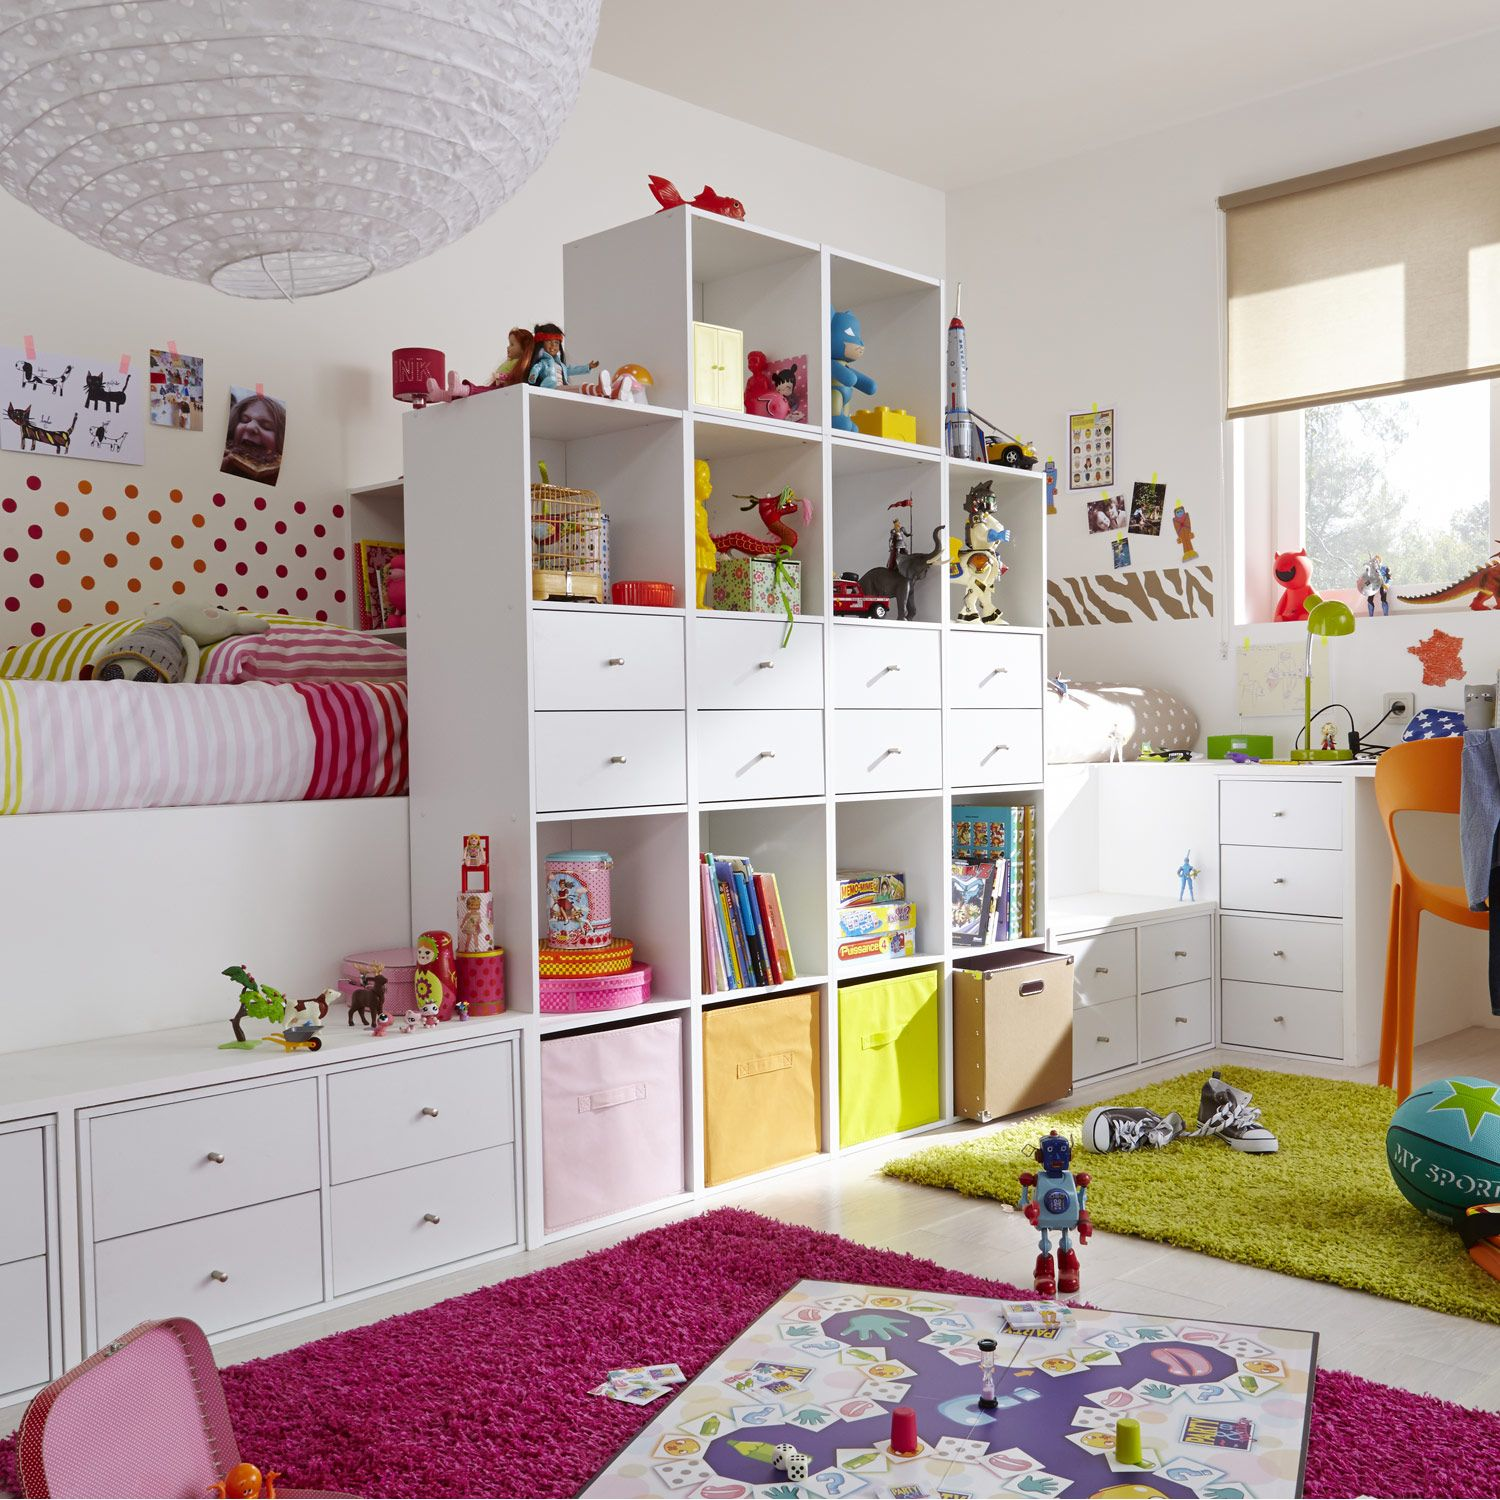 Am nagement d coratif multikaz 32 chambre d 39 enfant leroy for Leroy merlin idee deco